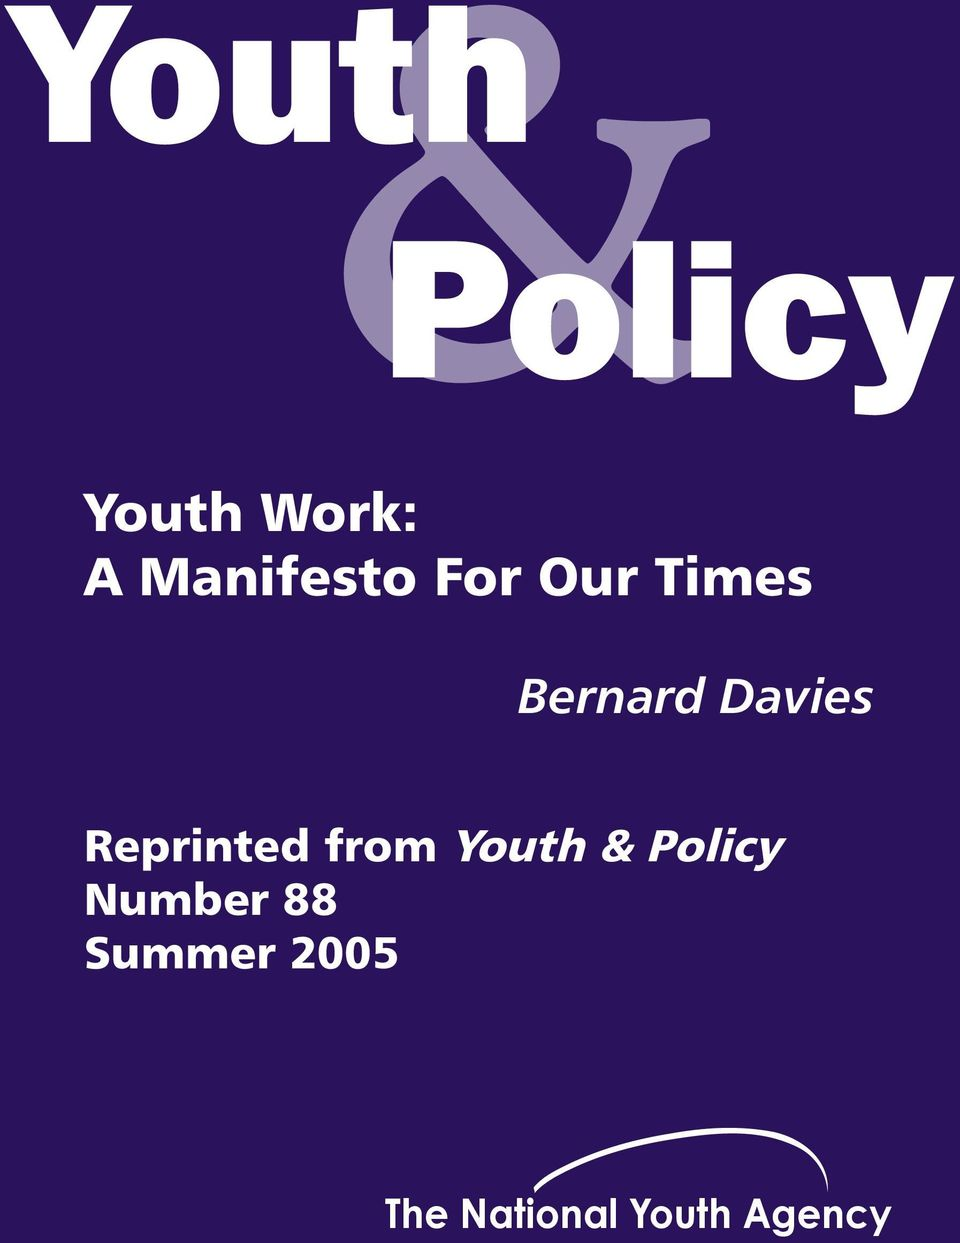 Davies Reprinted from Youth & Policy